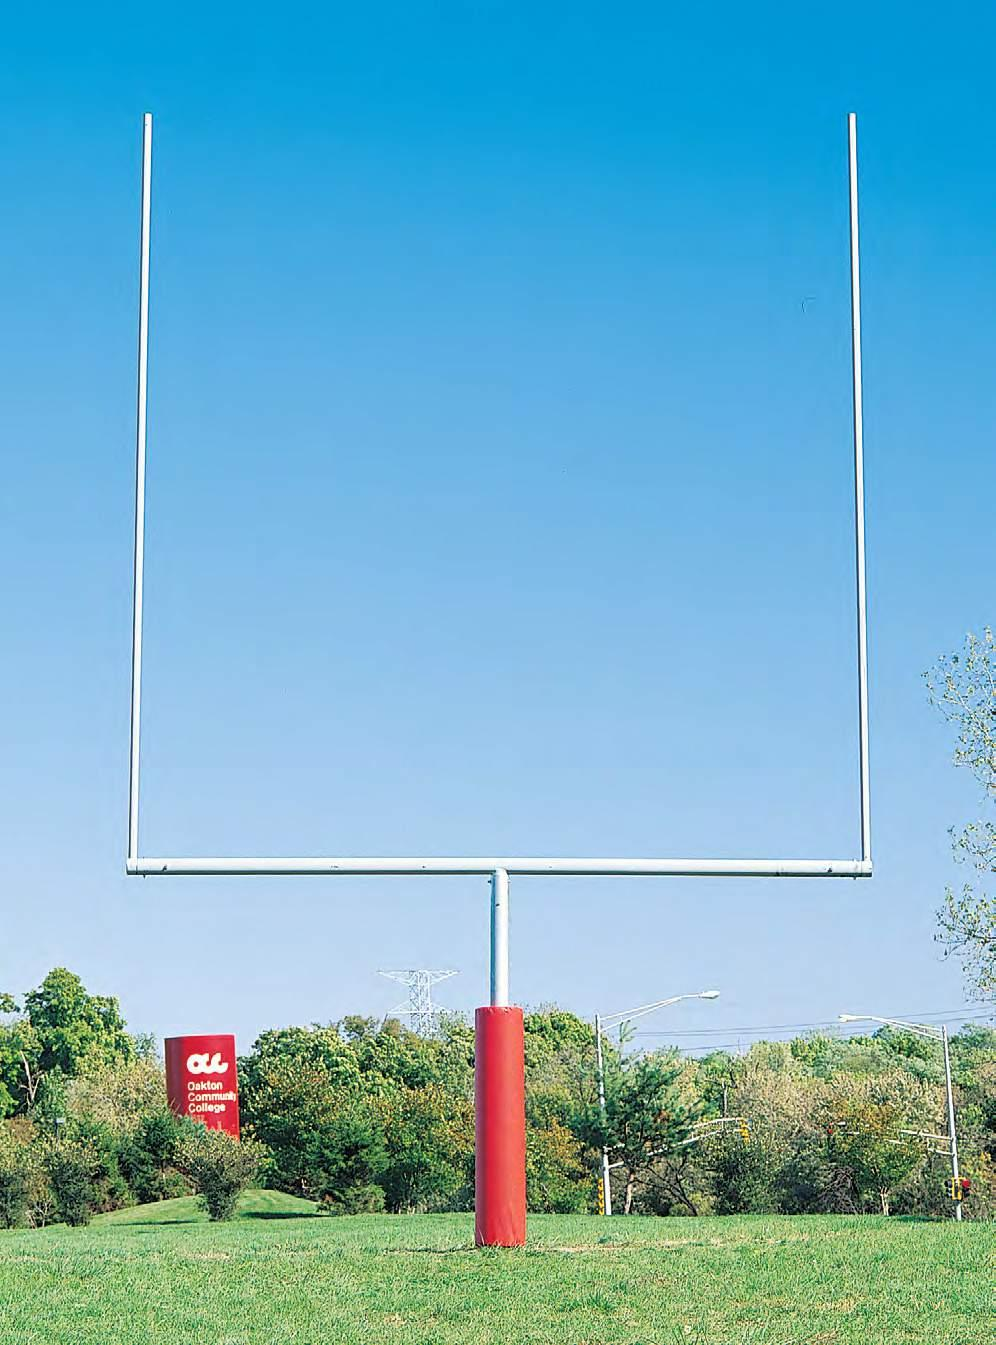 36 37 37 Plate Mount Goal Posts Steel football Goal Posts The 6 gooseneck goals are all steel and constructed of 5 9 16 diameter gooseneck, 5 diameter crossbar and 2 1 2 diameter uprights.